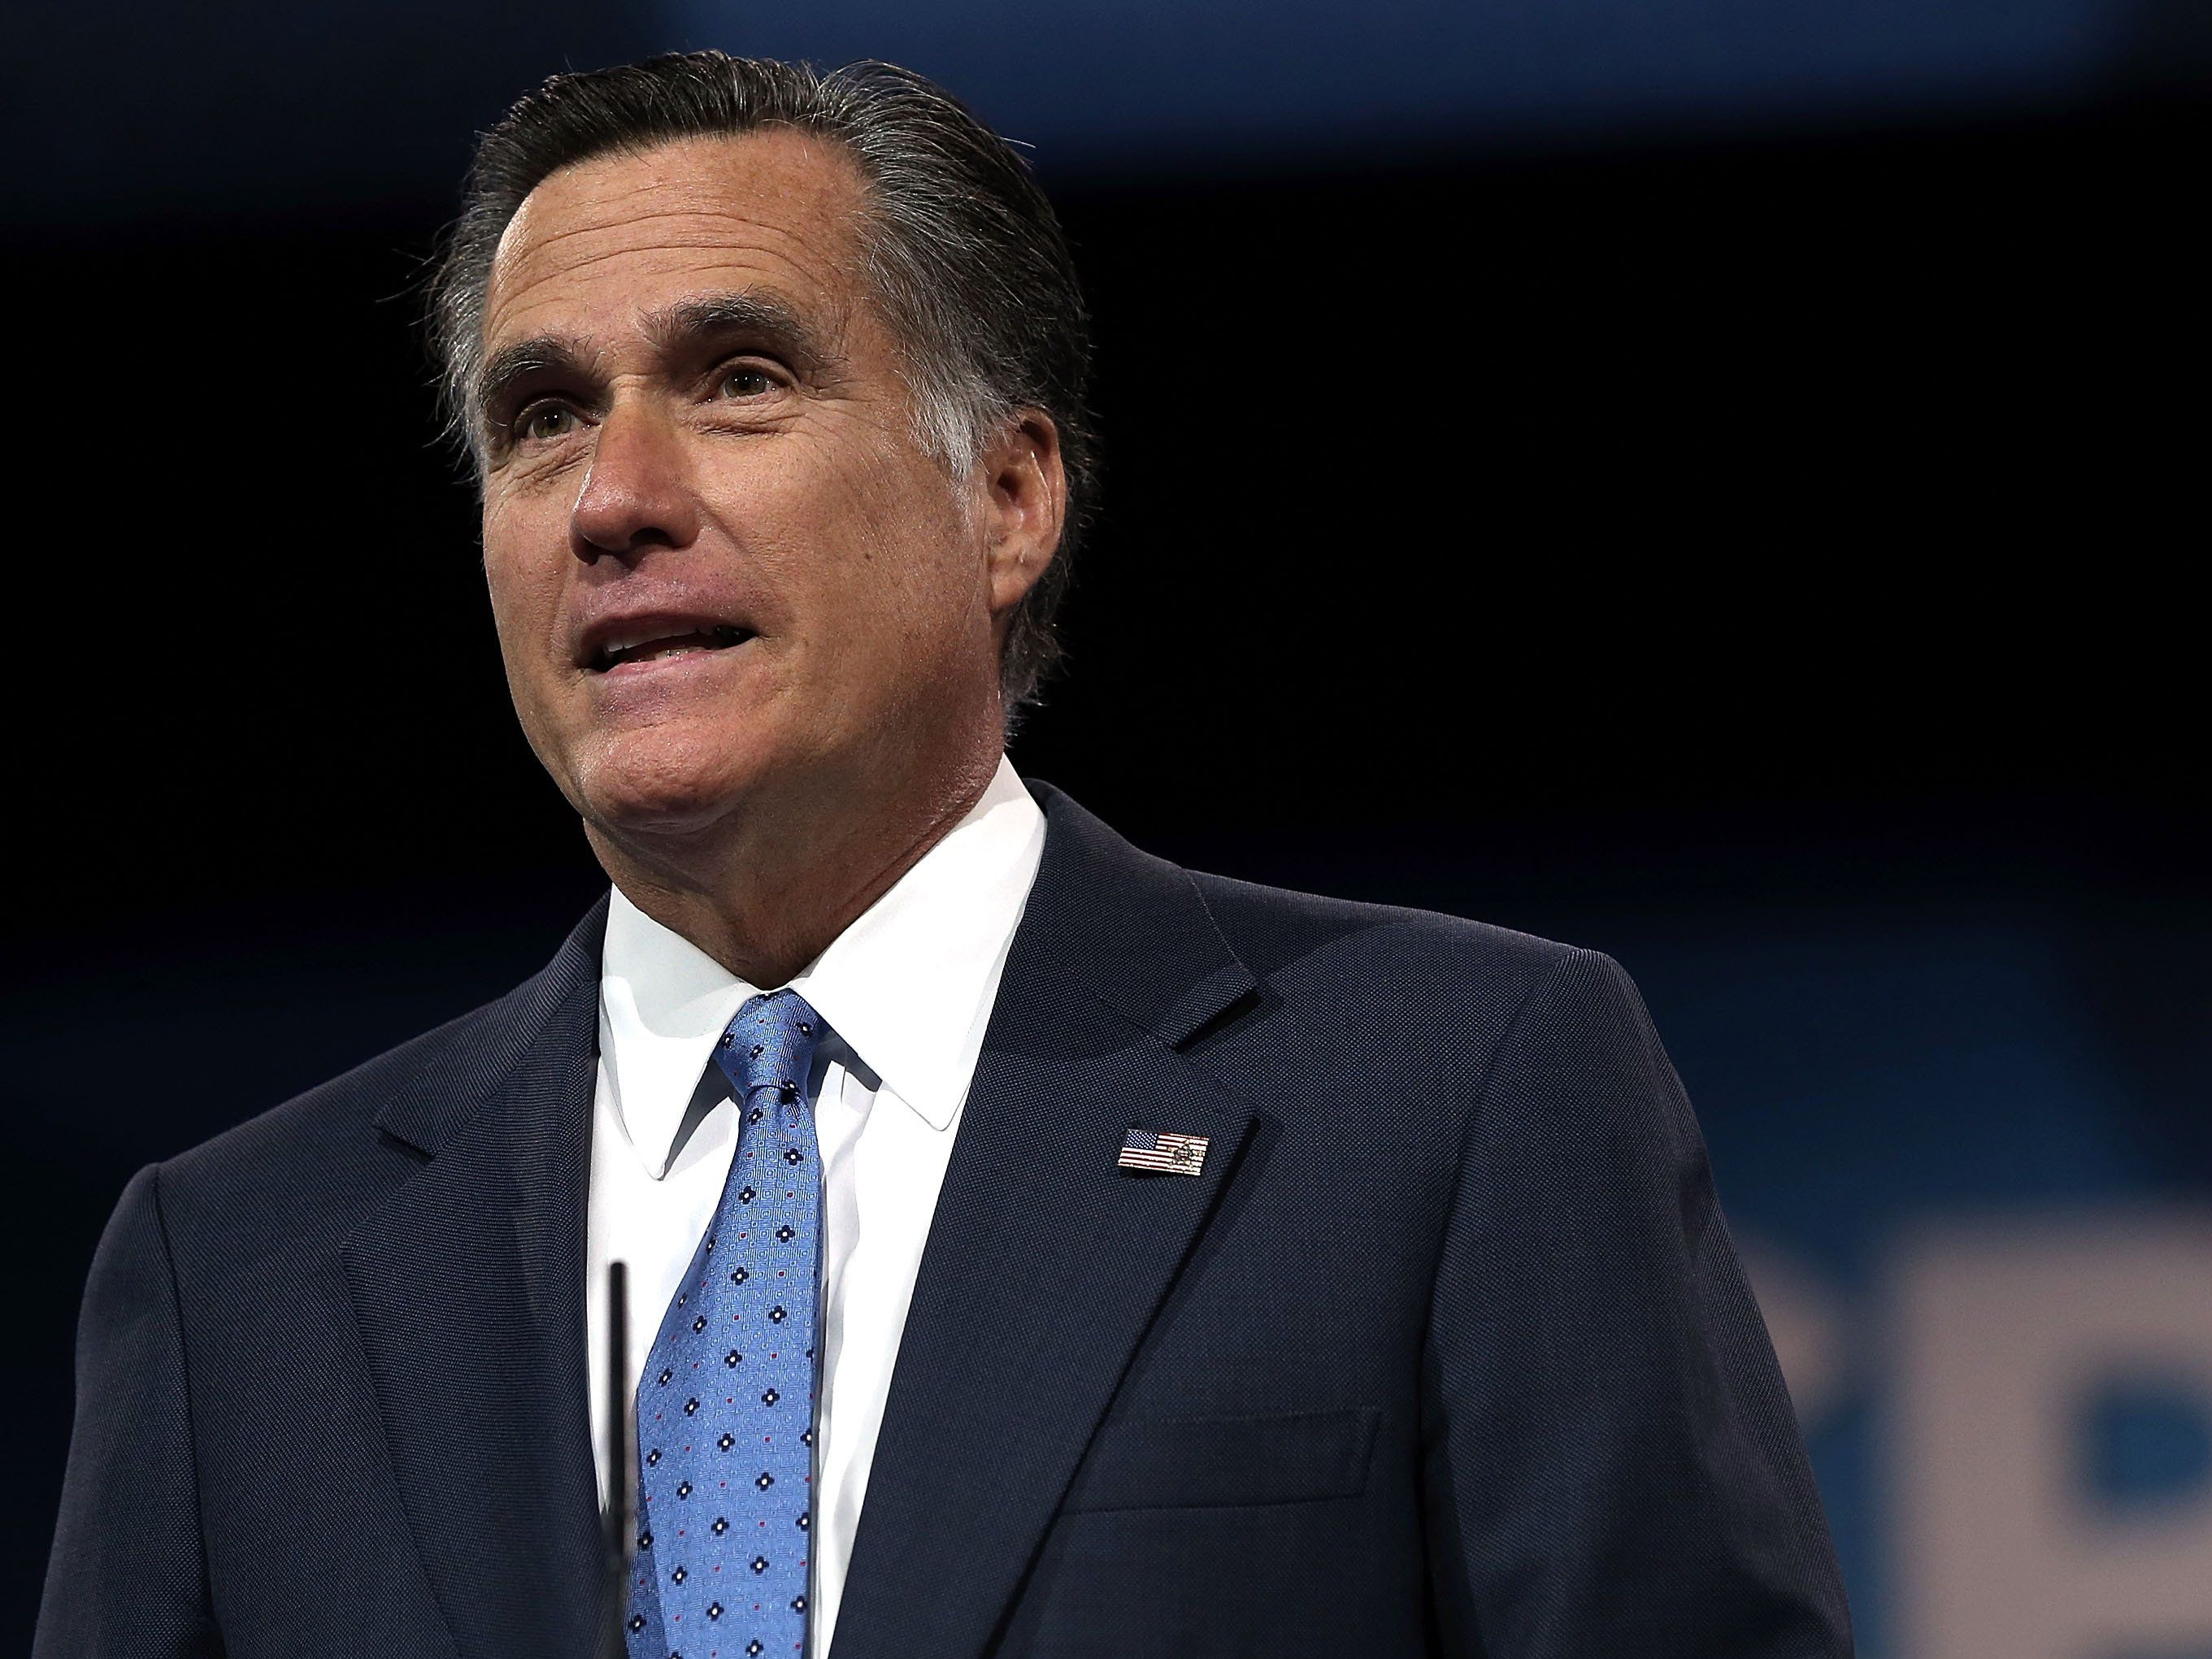 ROMNEY: Obama Mistakes Led To Rise Of ISIS